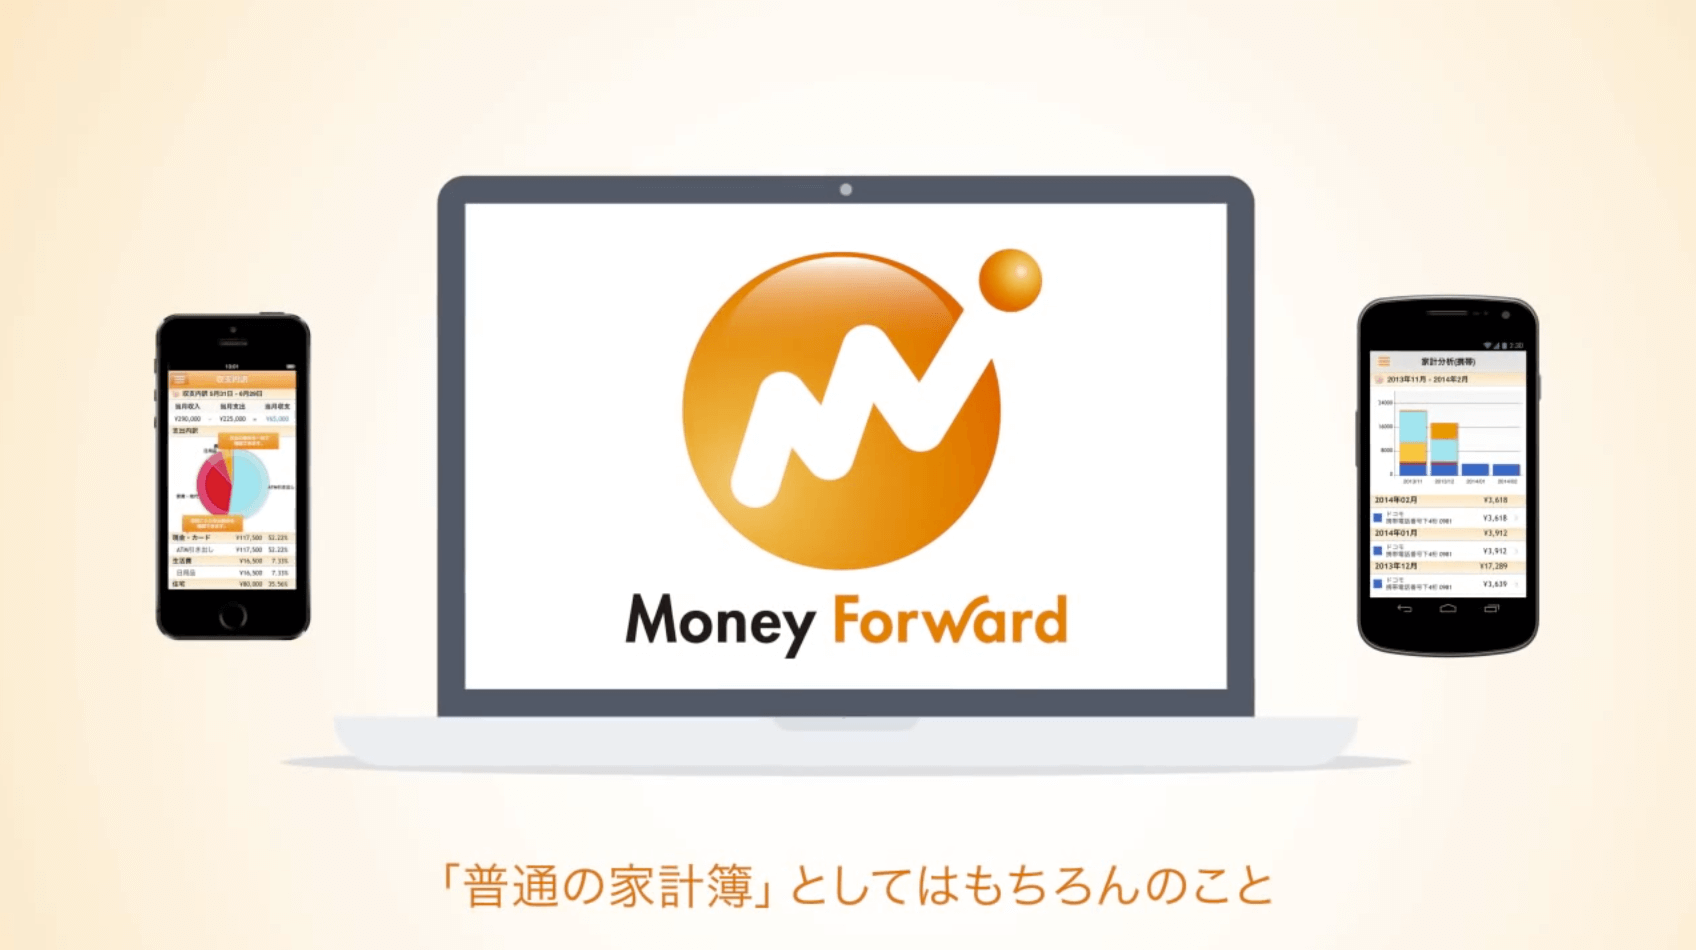 Money Forward